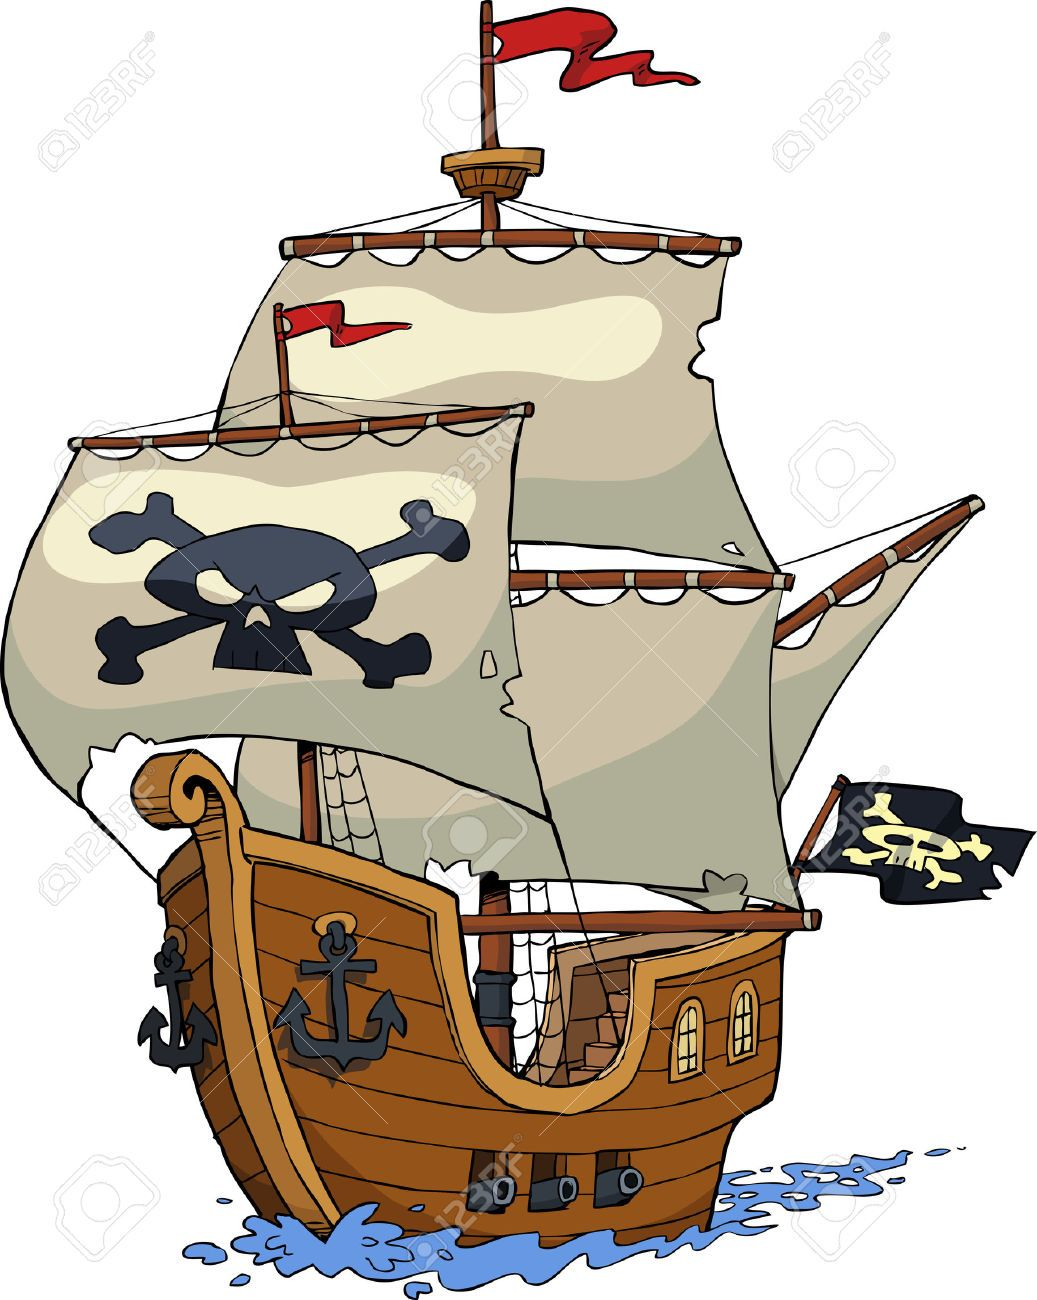 Image result for pirate ship cartoon background.